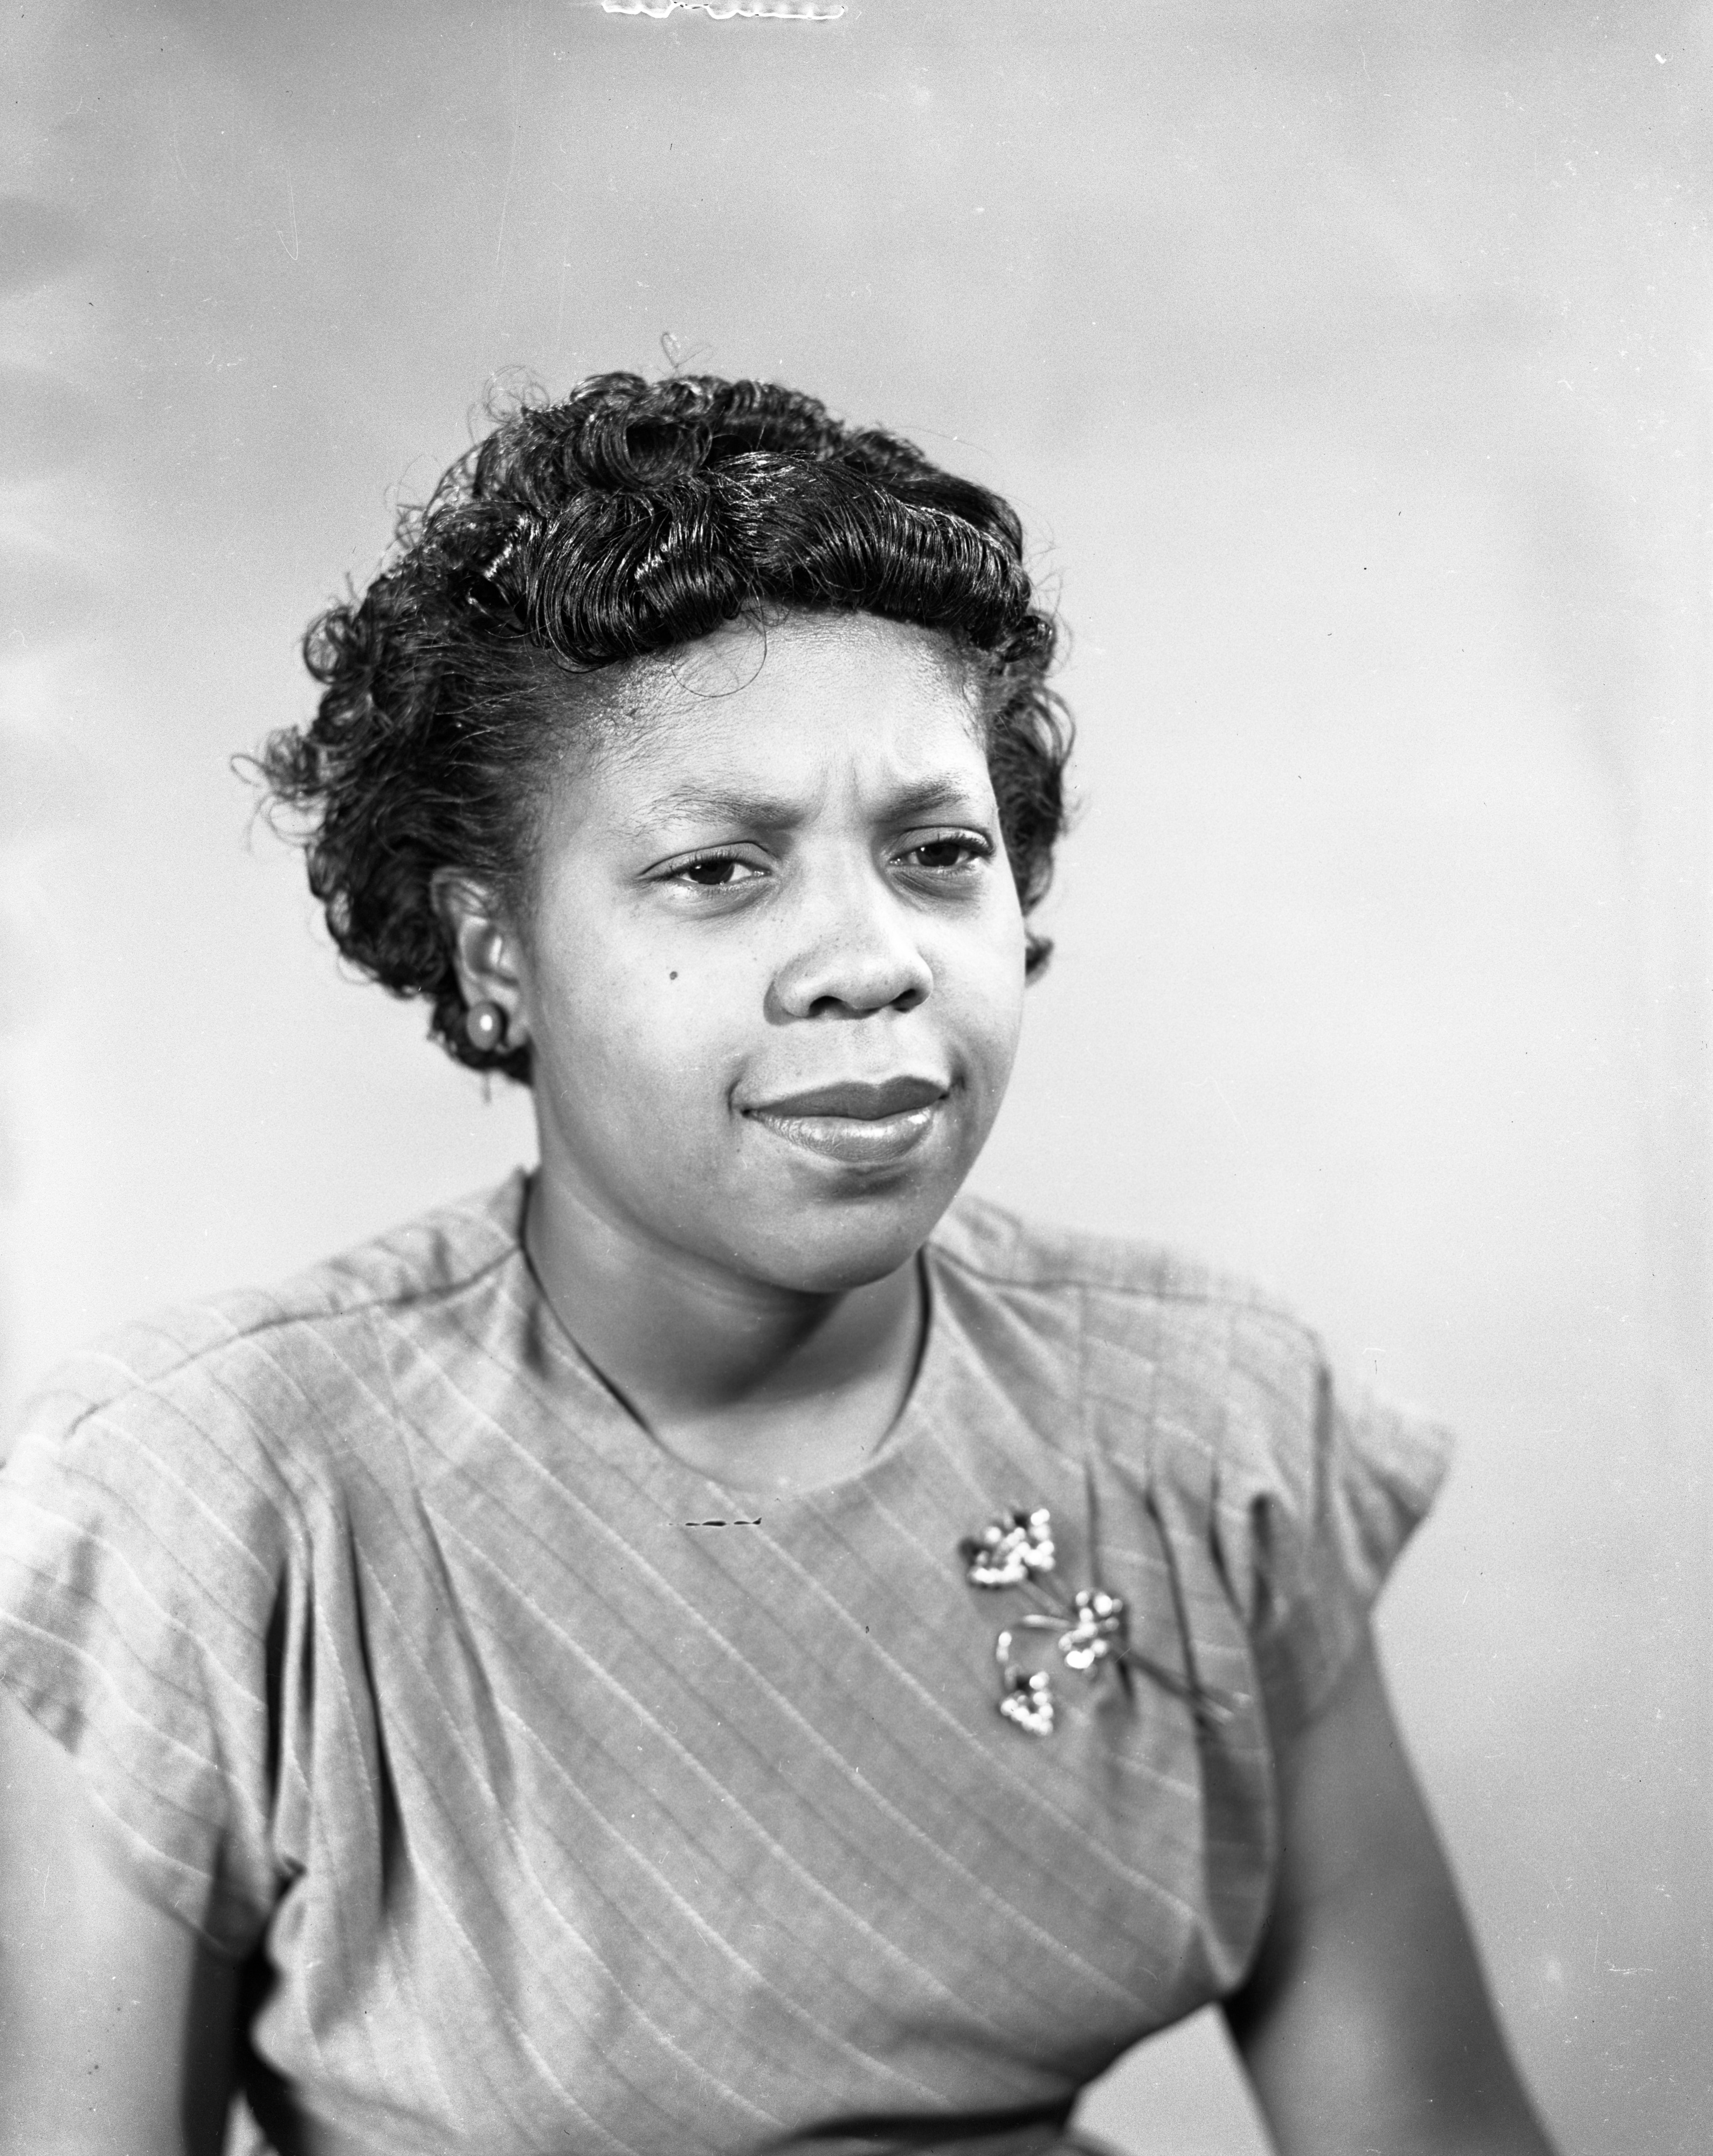 Progressive Party Candidate for Register of Deeds, Mrs. Mae Ava Phillips, September 1948 image